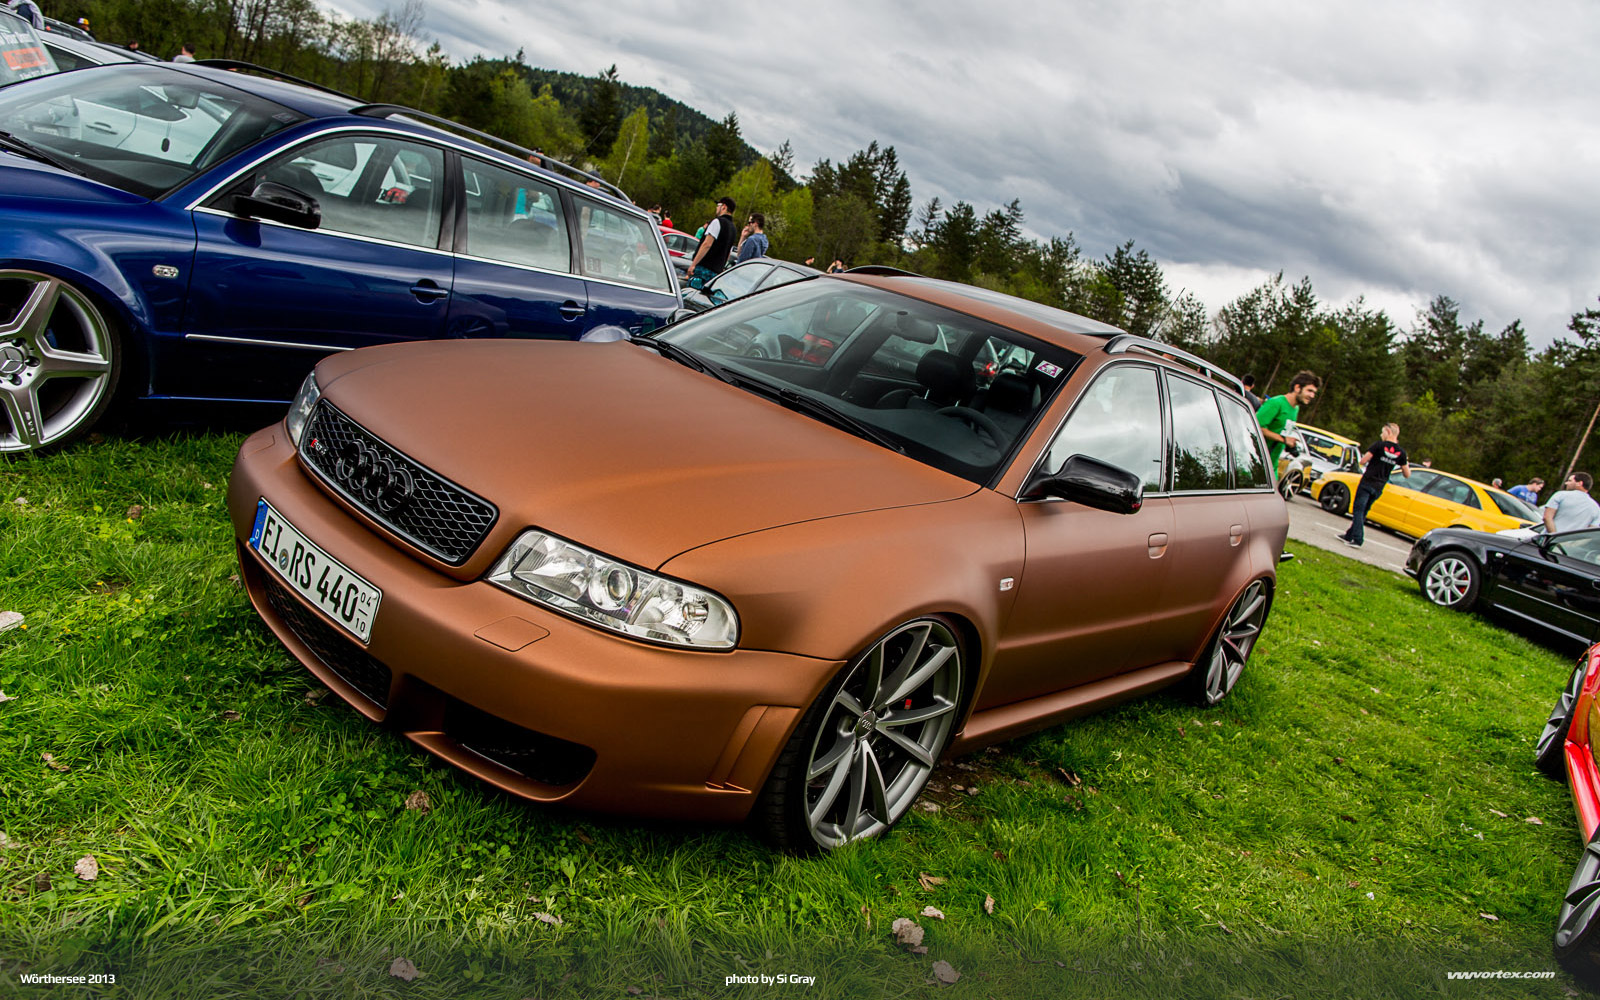 worthersee-2013-gallery-si-gray-032